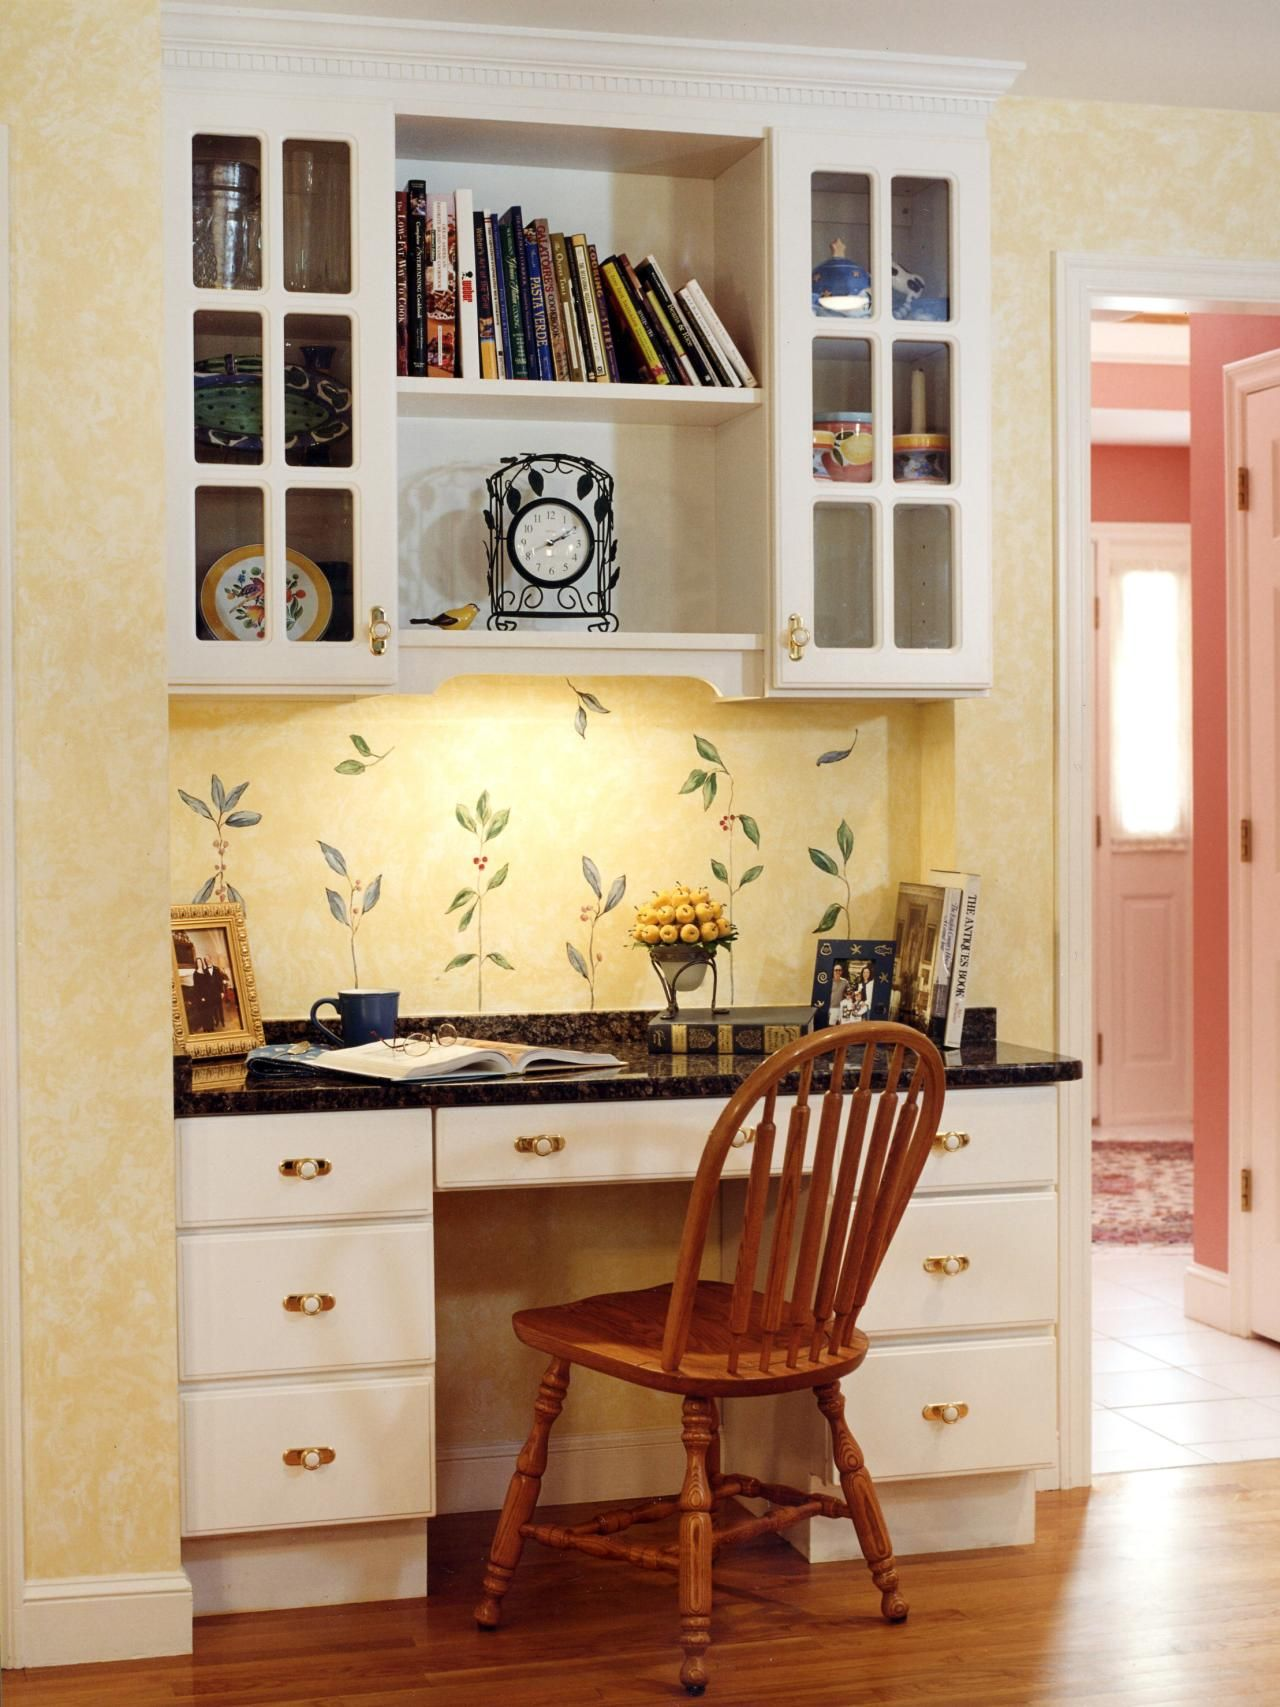 This sunny cottage-style kitchen features a built-in desk and ...